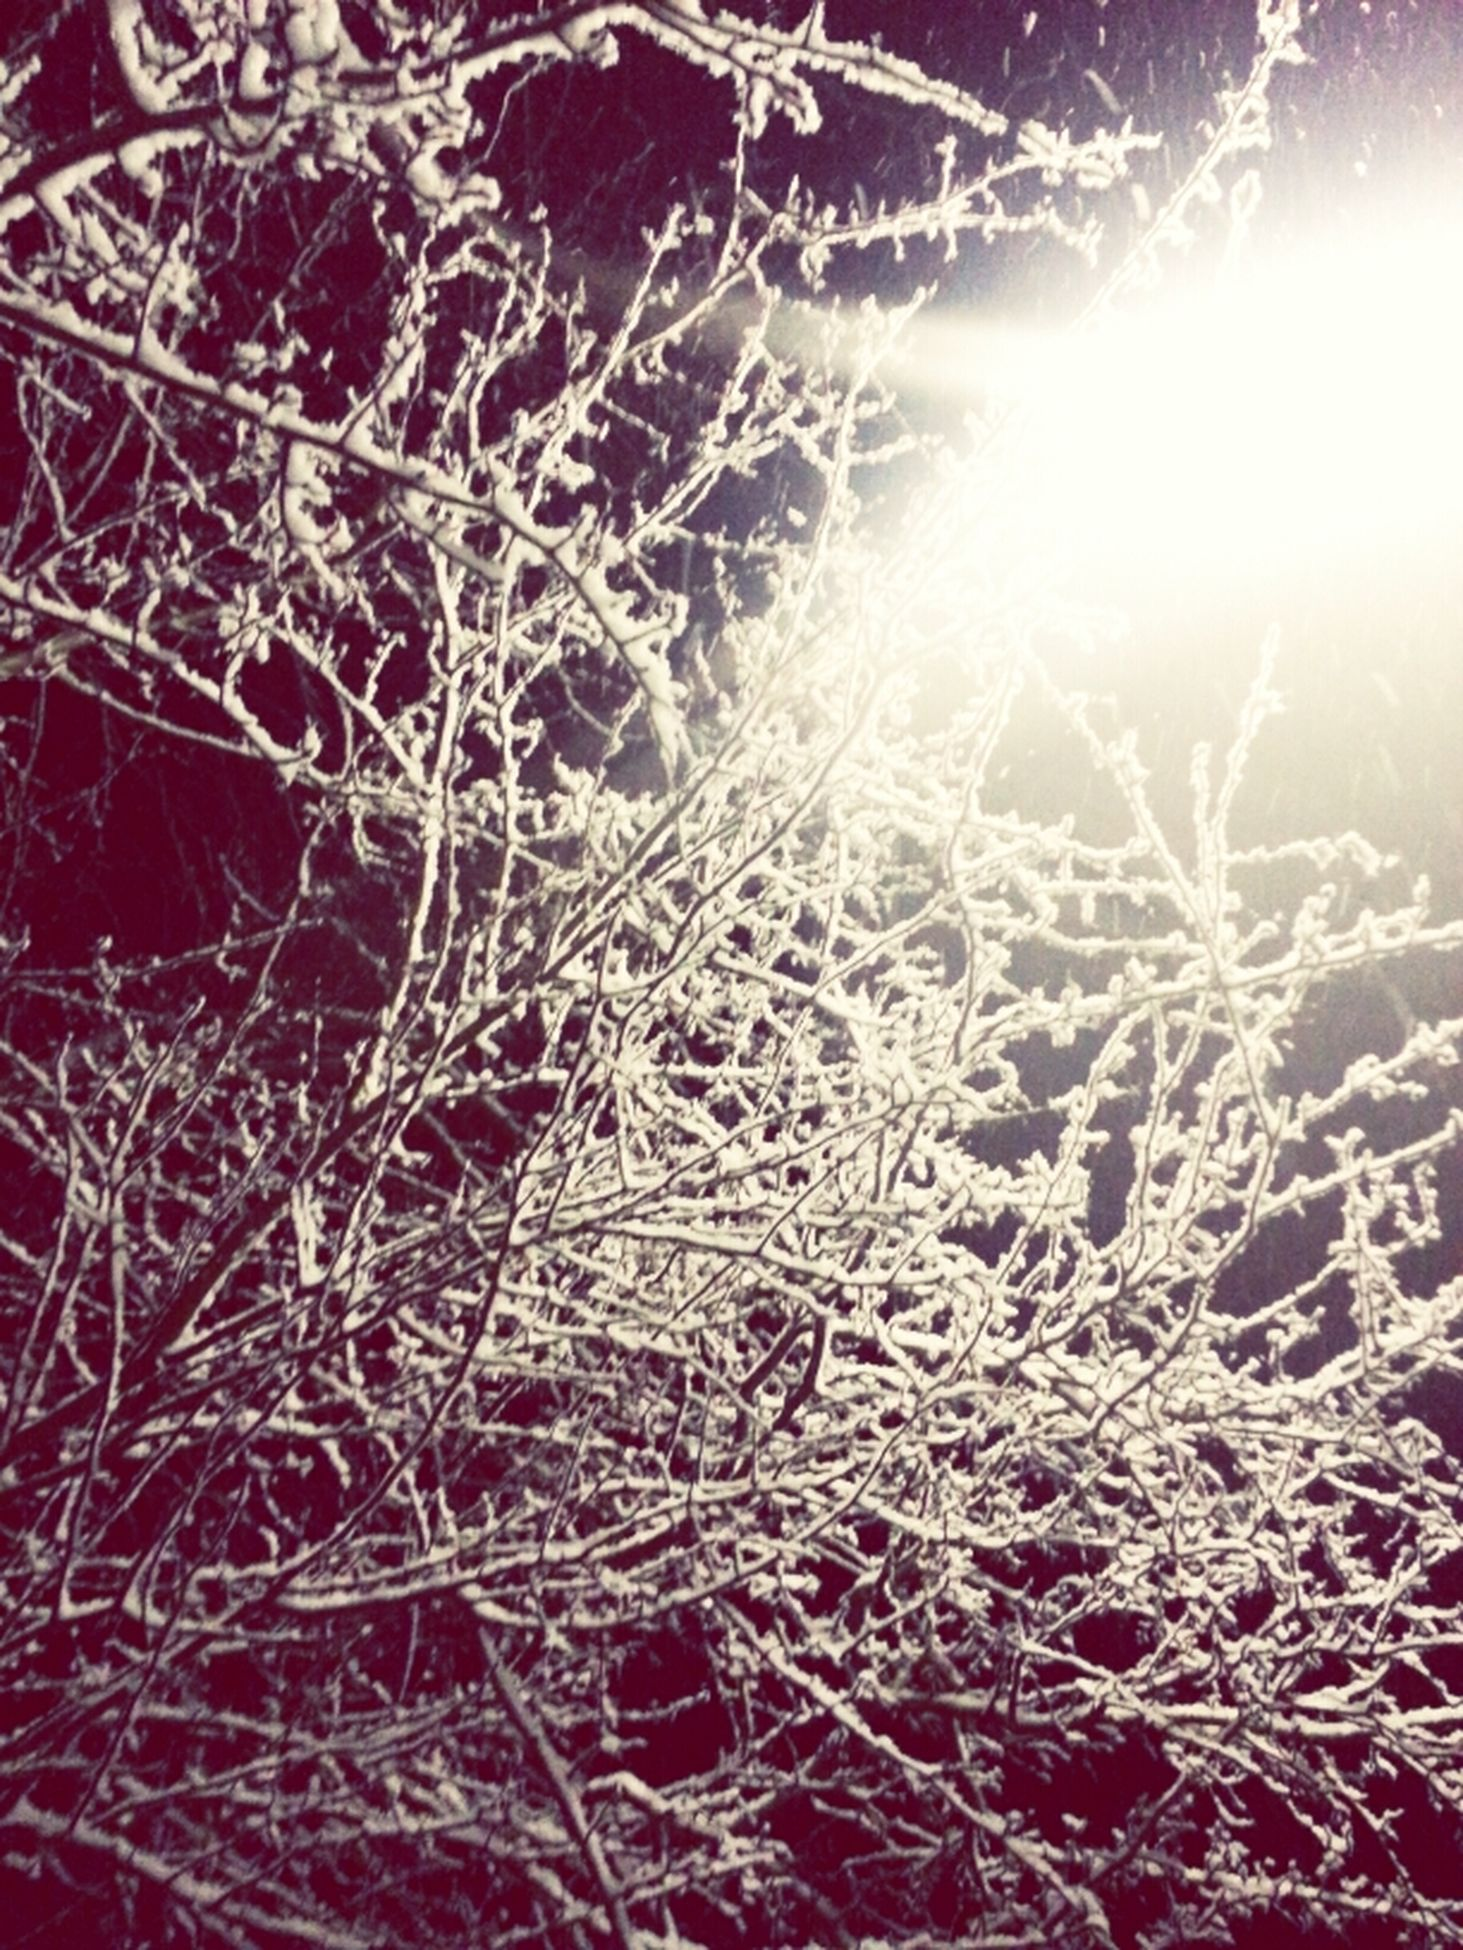 branch, nature, bare tree, tranquility, sunlight, beauty in nature, winter, cold temperature, low angle view, outdoors, no people, close-up, night, tree, scenics, backgrounds, sun, snow, growth